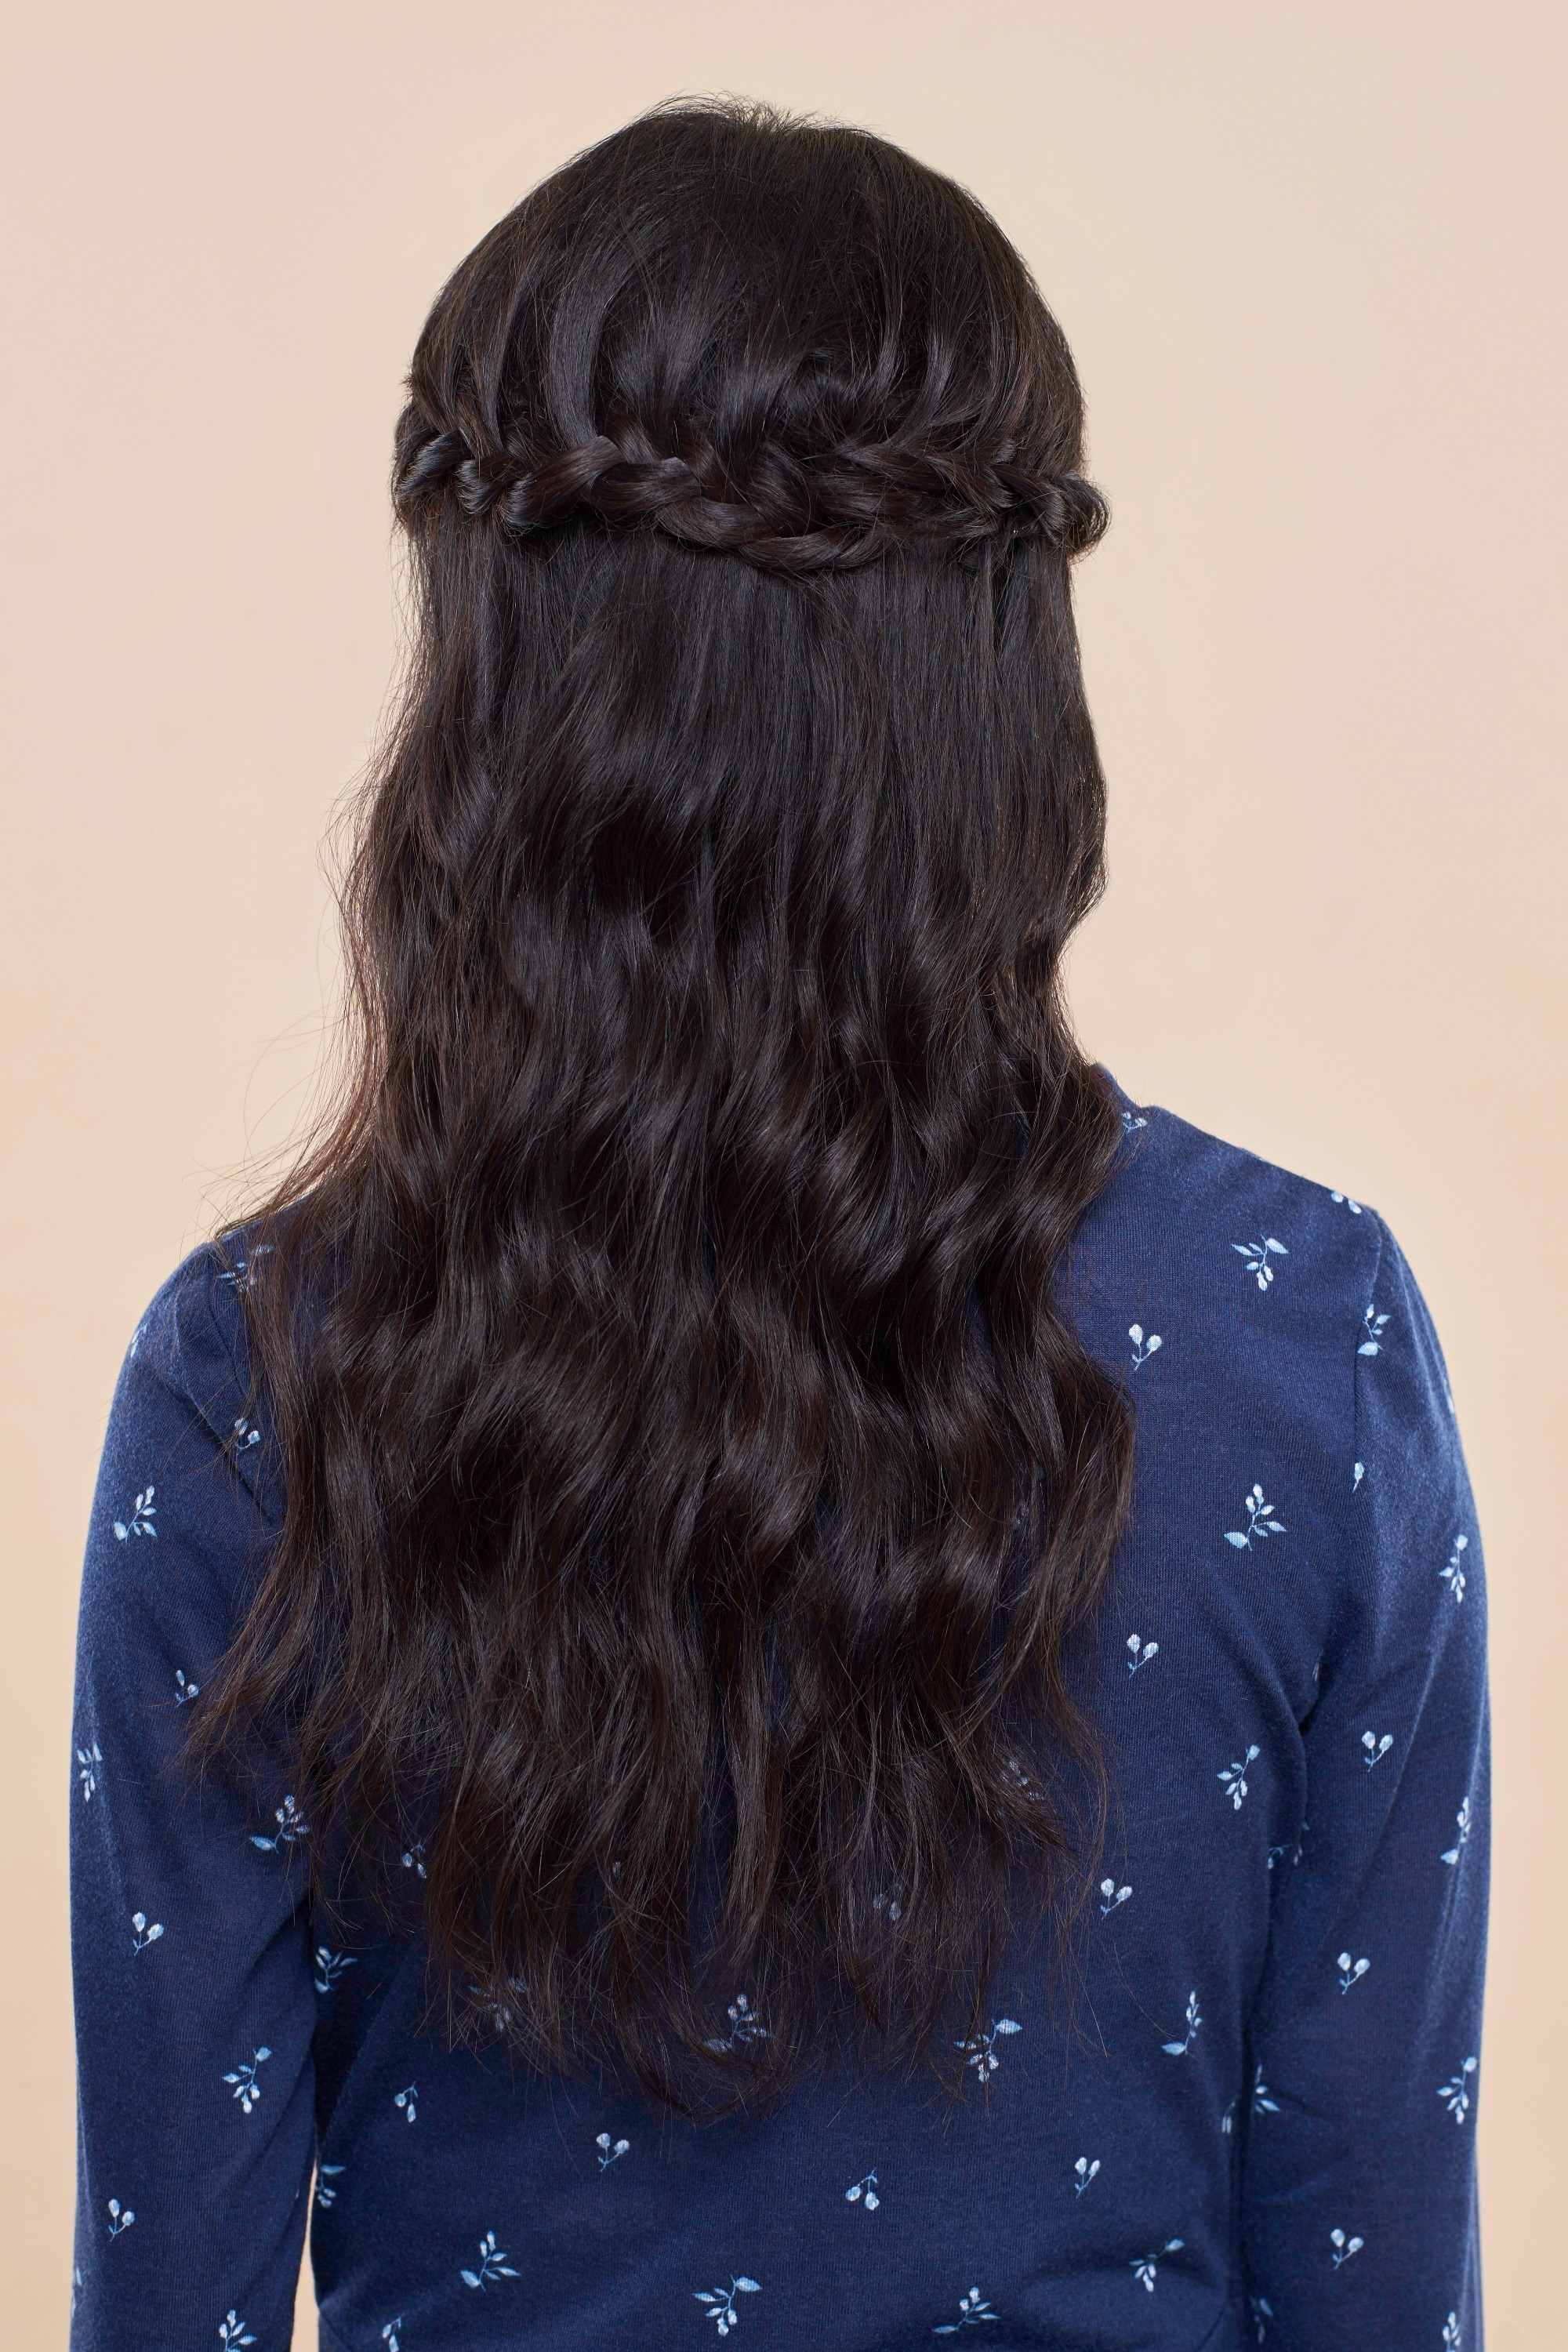 Sansa Stark Braid: Back shot of an Asian woman with long black hair in half crown braid